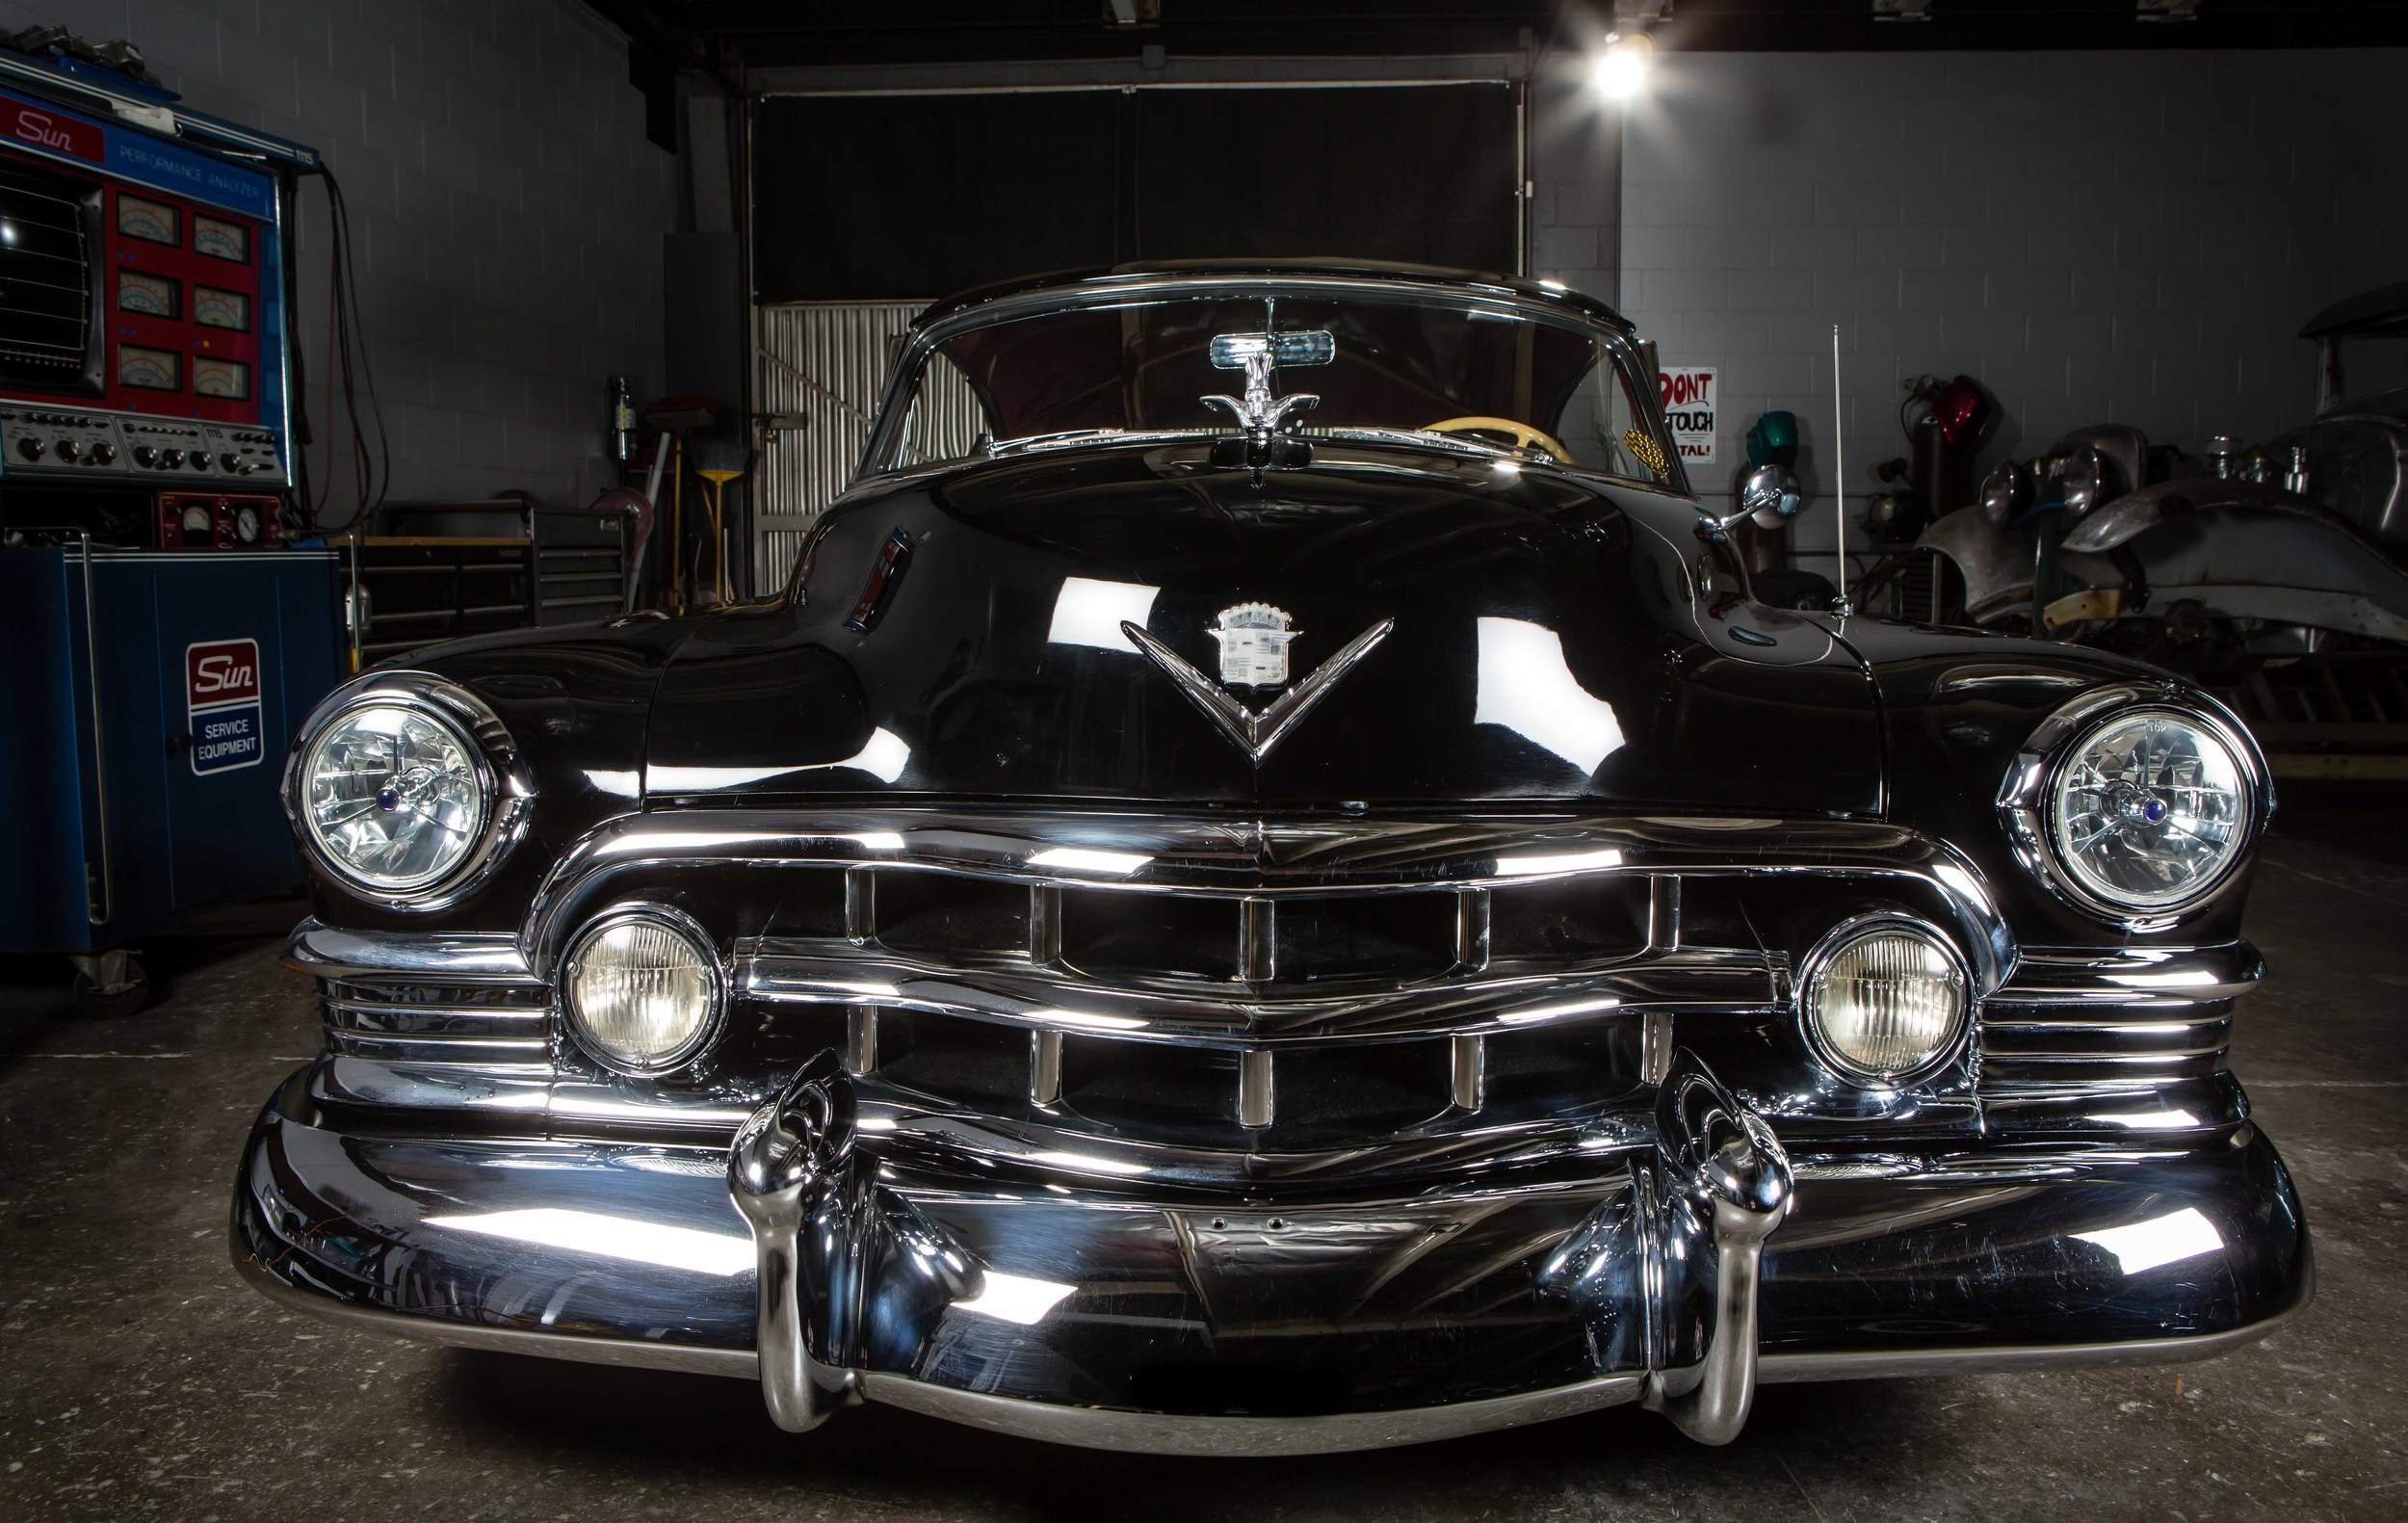 Anaheim Rod and Custom 1950 Cadillac -10.jpg